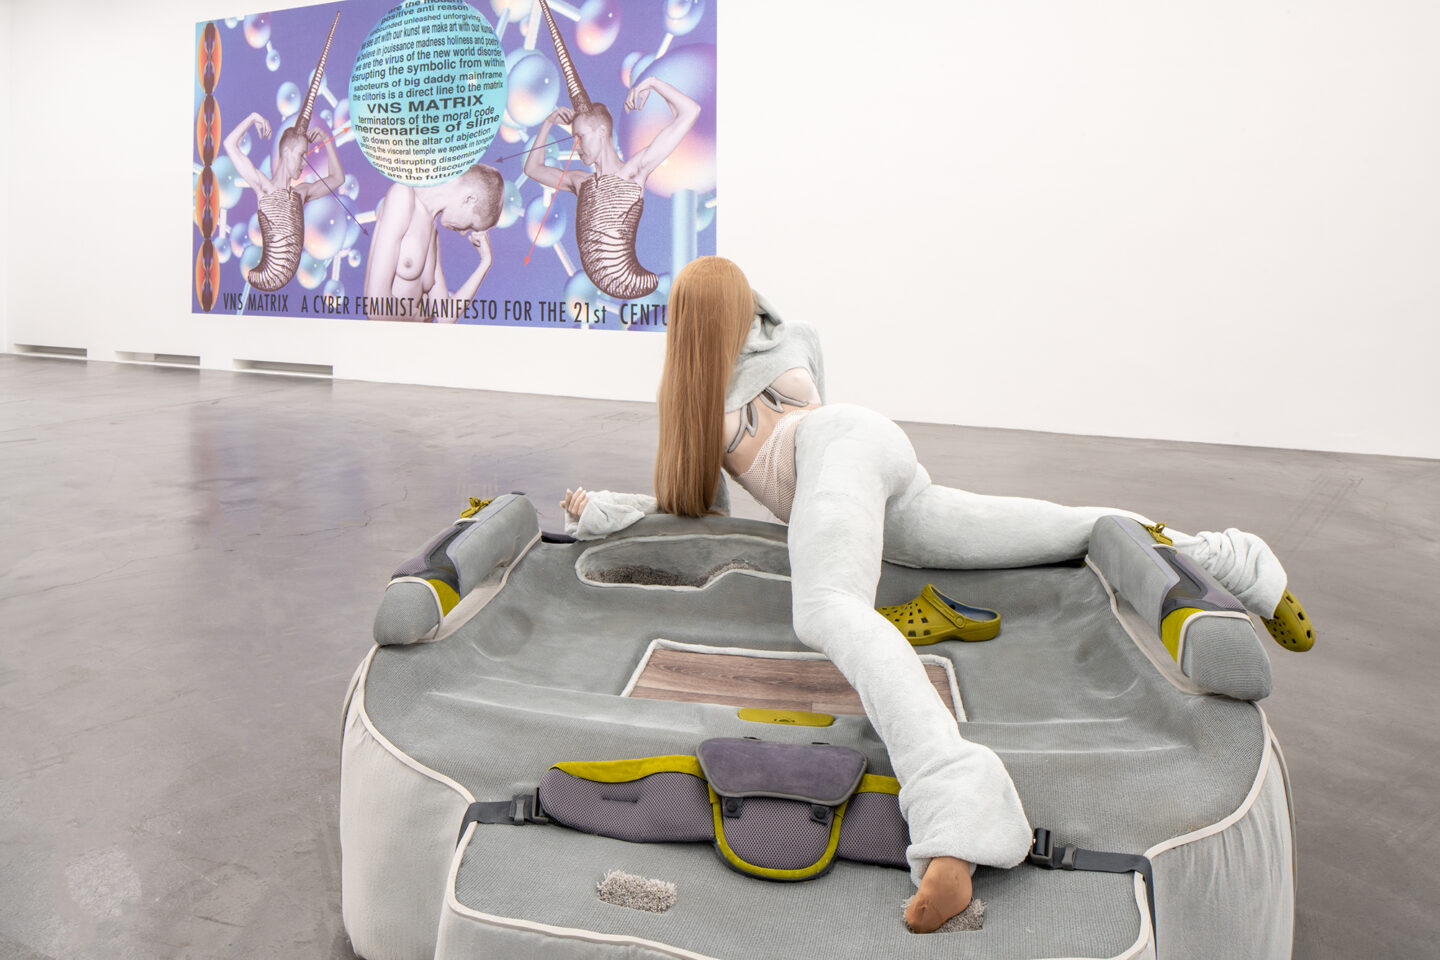 Exhibition View Groupshow «Producing Futures ; view on Anna Uddenberg, Disconnect (airplane mode), 2018, (Courtesy the artist and Kraupa-Tuskany Zeidler, Berlin) and VNS Matrix, The Cyberfeminist Manifesto for the 21st Century, 1991, (Courtesy the artists)» at Migros Museum, Zurich / Photo: Lorenzo Pusterla